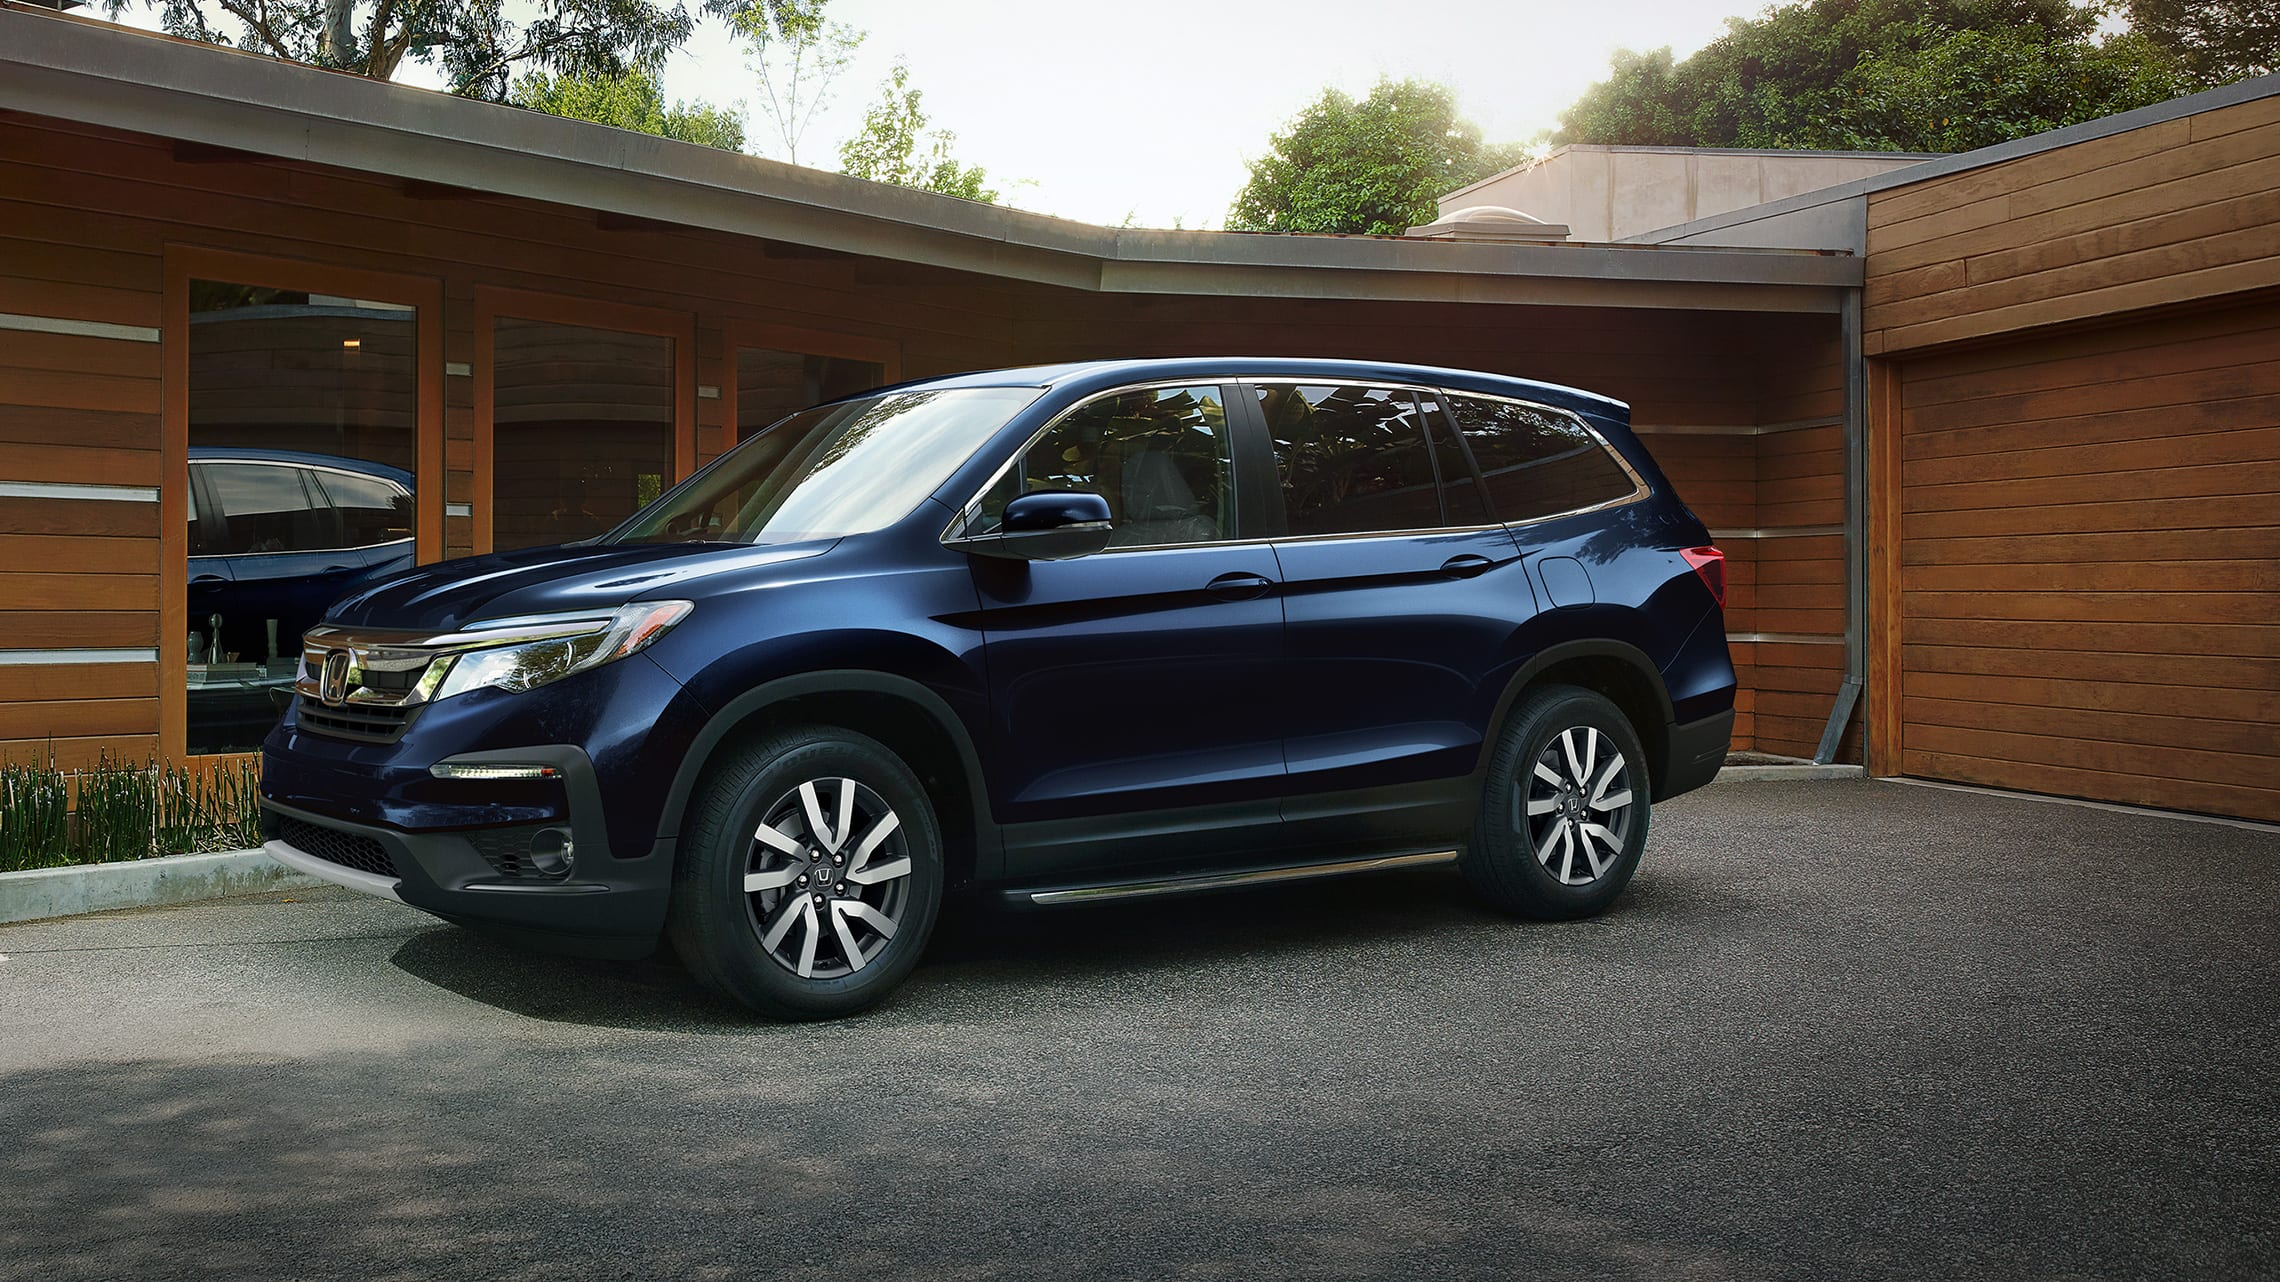 Front 7/8 driver-side view of 2021 Honda Pilot EX-L in Obsidian Blue Pearl parked outside a modern family home.